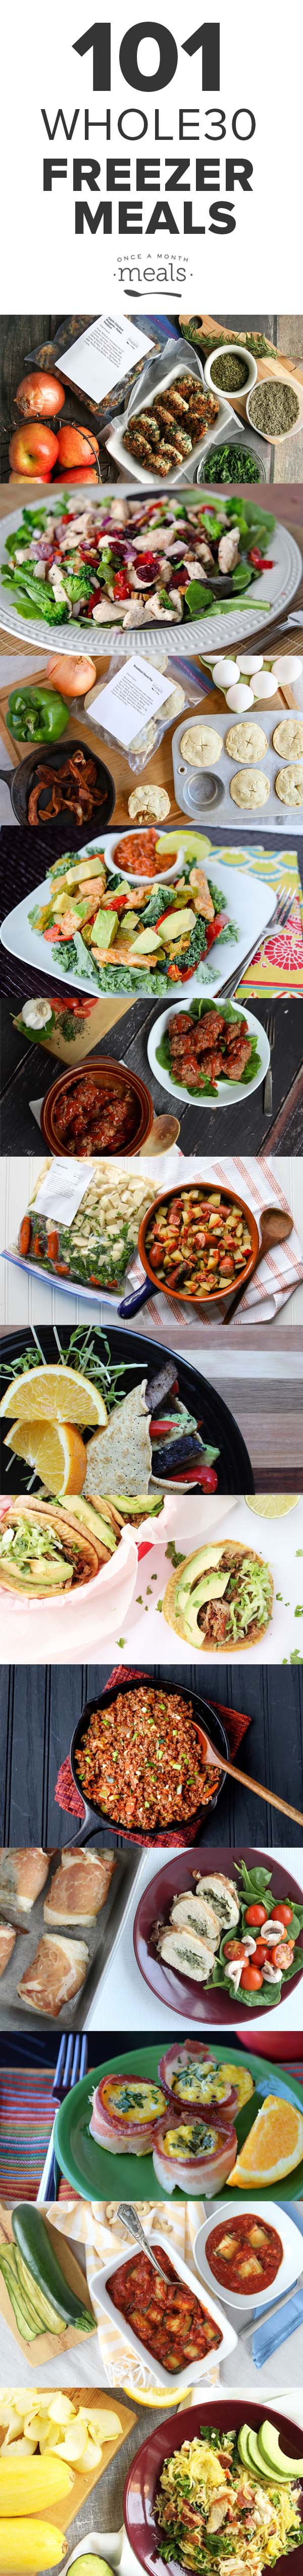 Don't get caught wondering what to eat! We have 101 recipes in a wide variety of flavors that can be cooked and frozen ahead of time so you finish your Whole30.